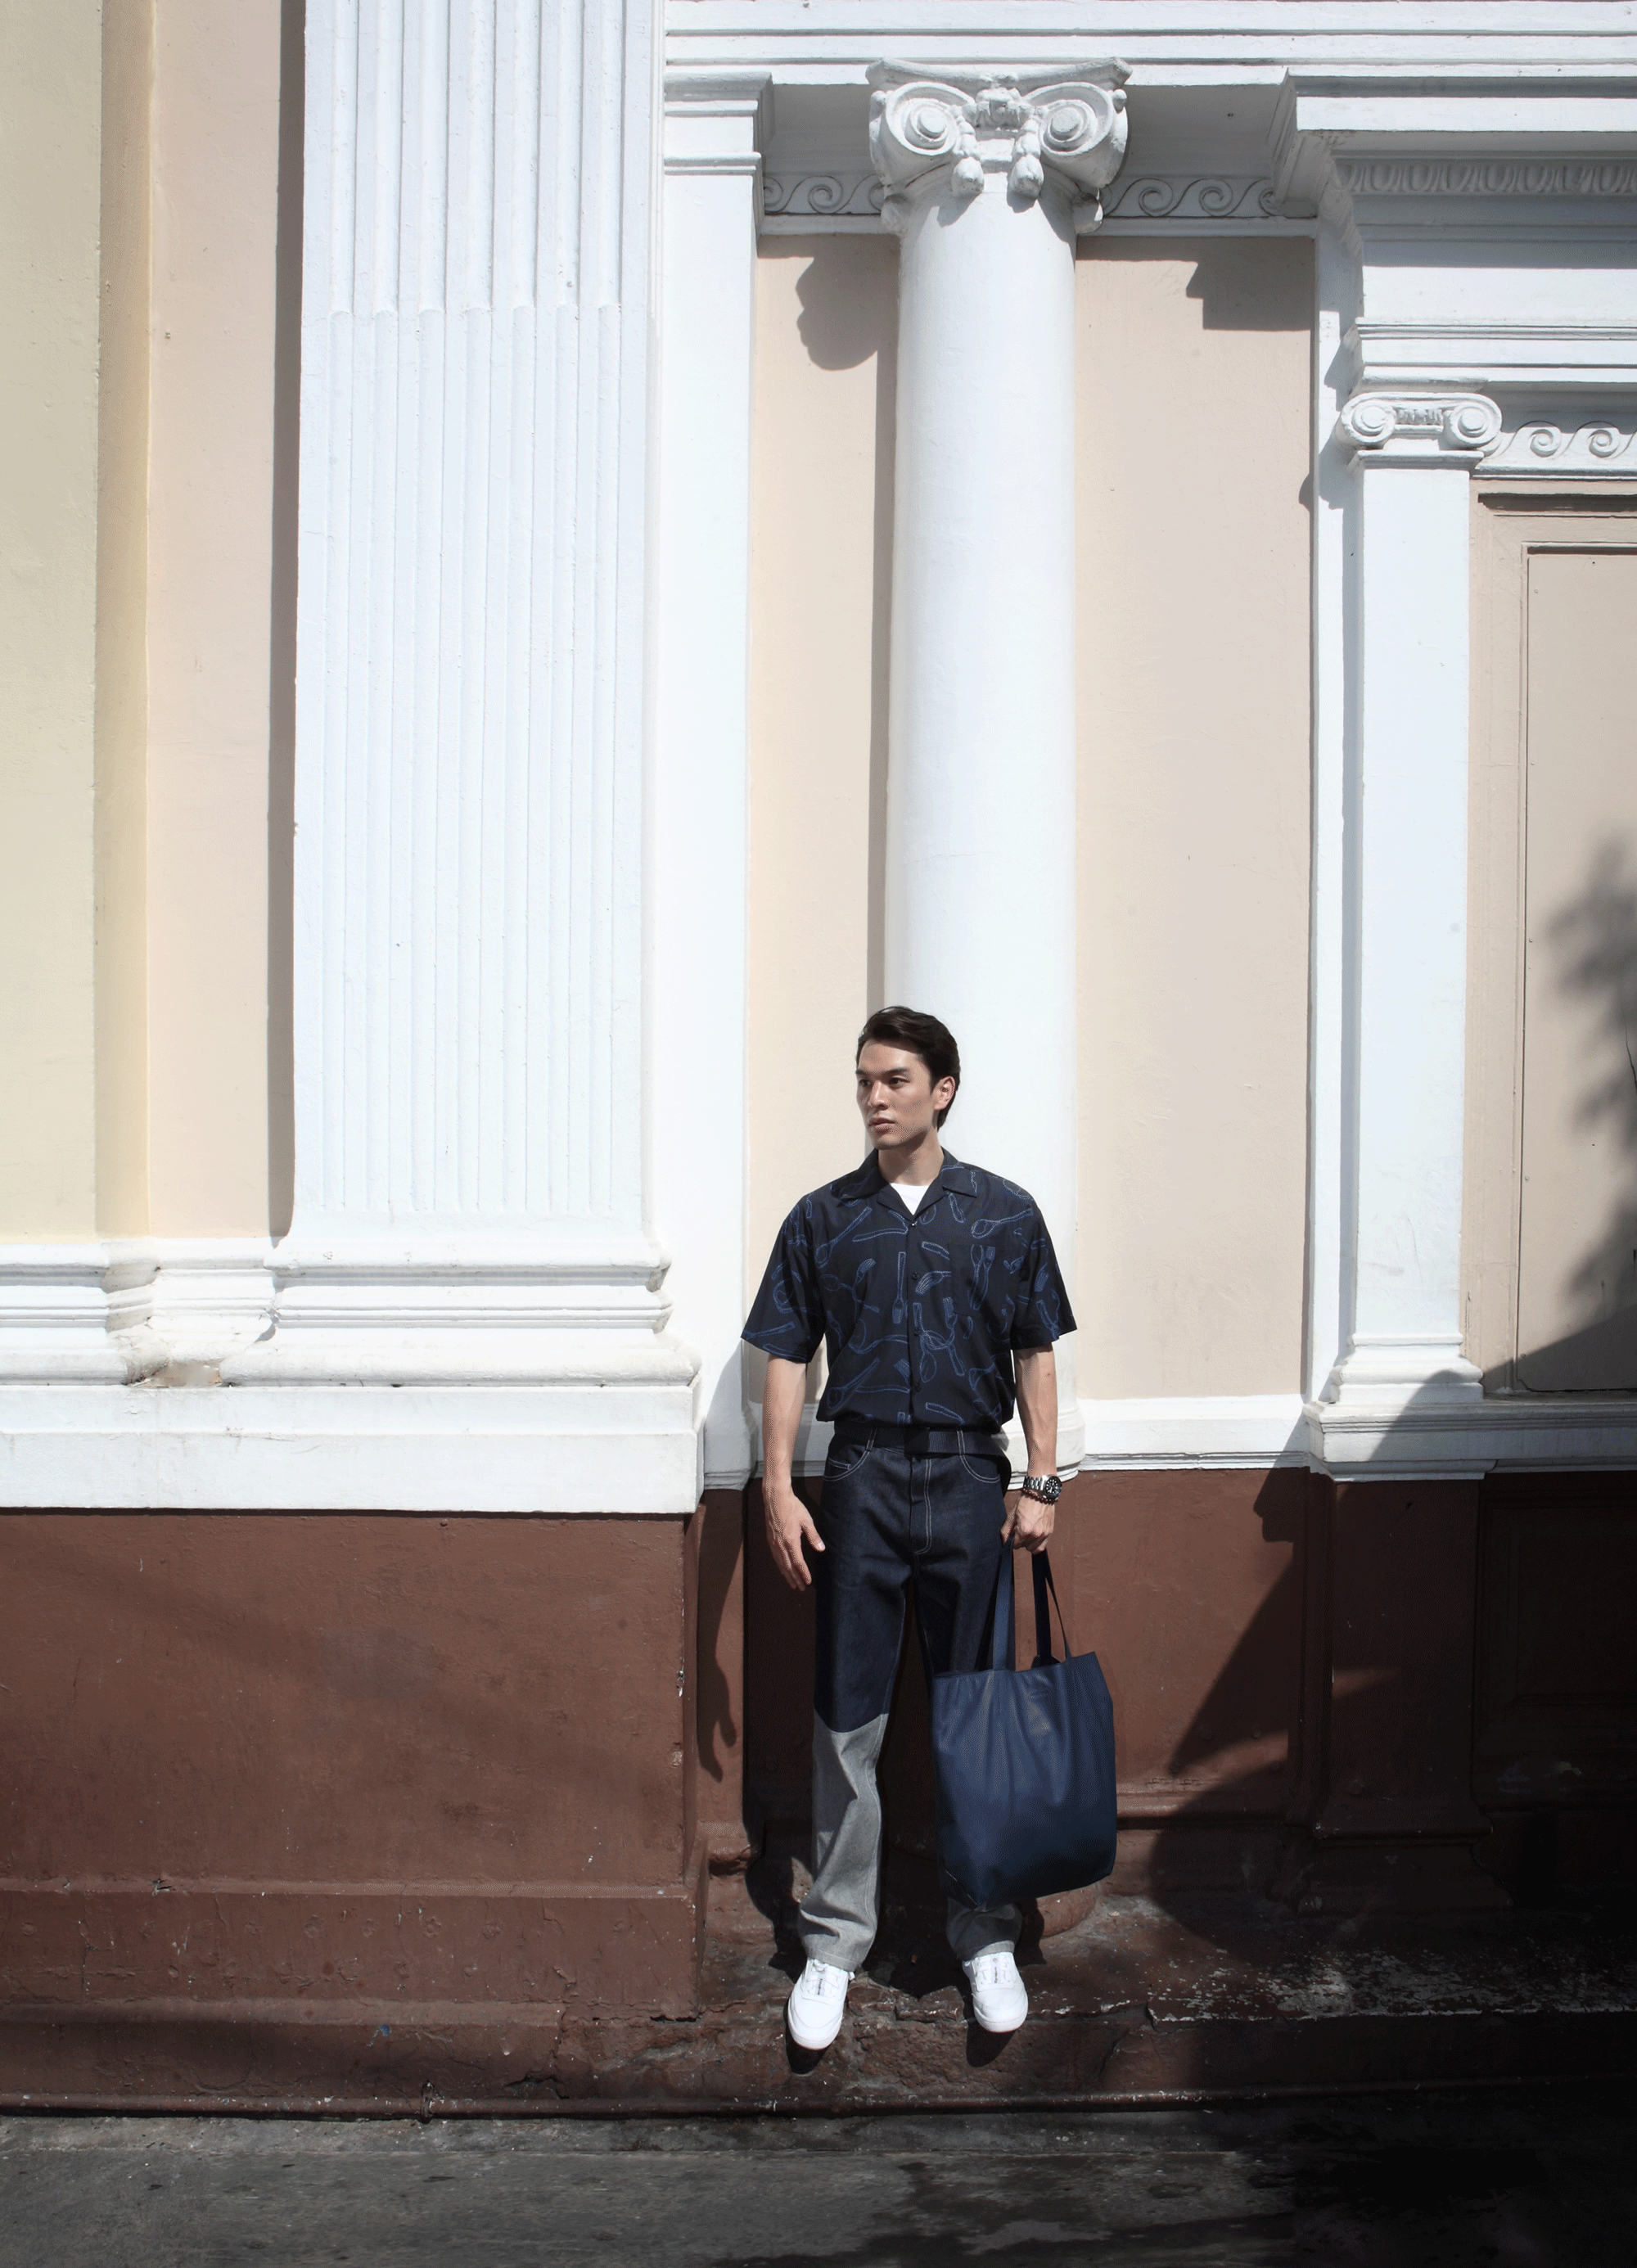 clothes : Everyday Karmakamet / bag : CONTAINER